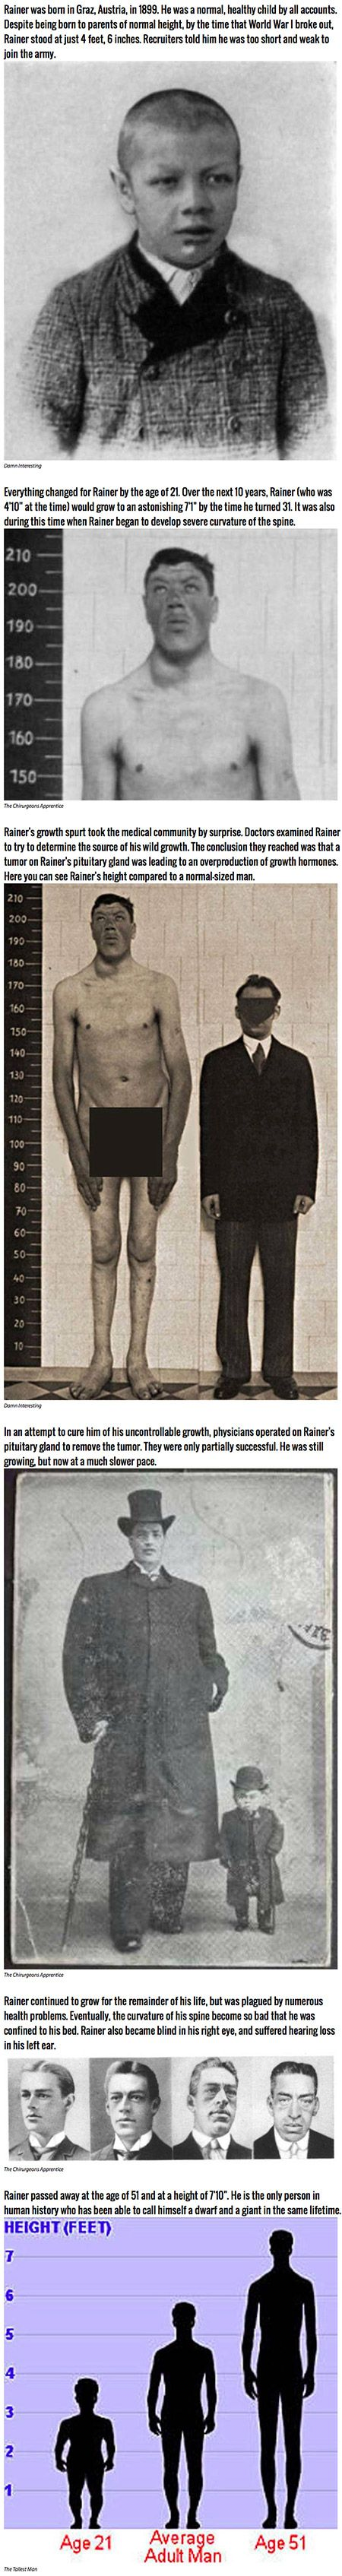 It is genuinely rare these days to come across a so-called medical miracle. Yet back in the early 1900s, the case of Adam Rainers strange and miraculous growth stunned physicians. Rainer is the only person in recorded history to have been both legally a dwarf and a giant.